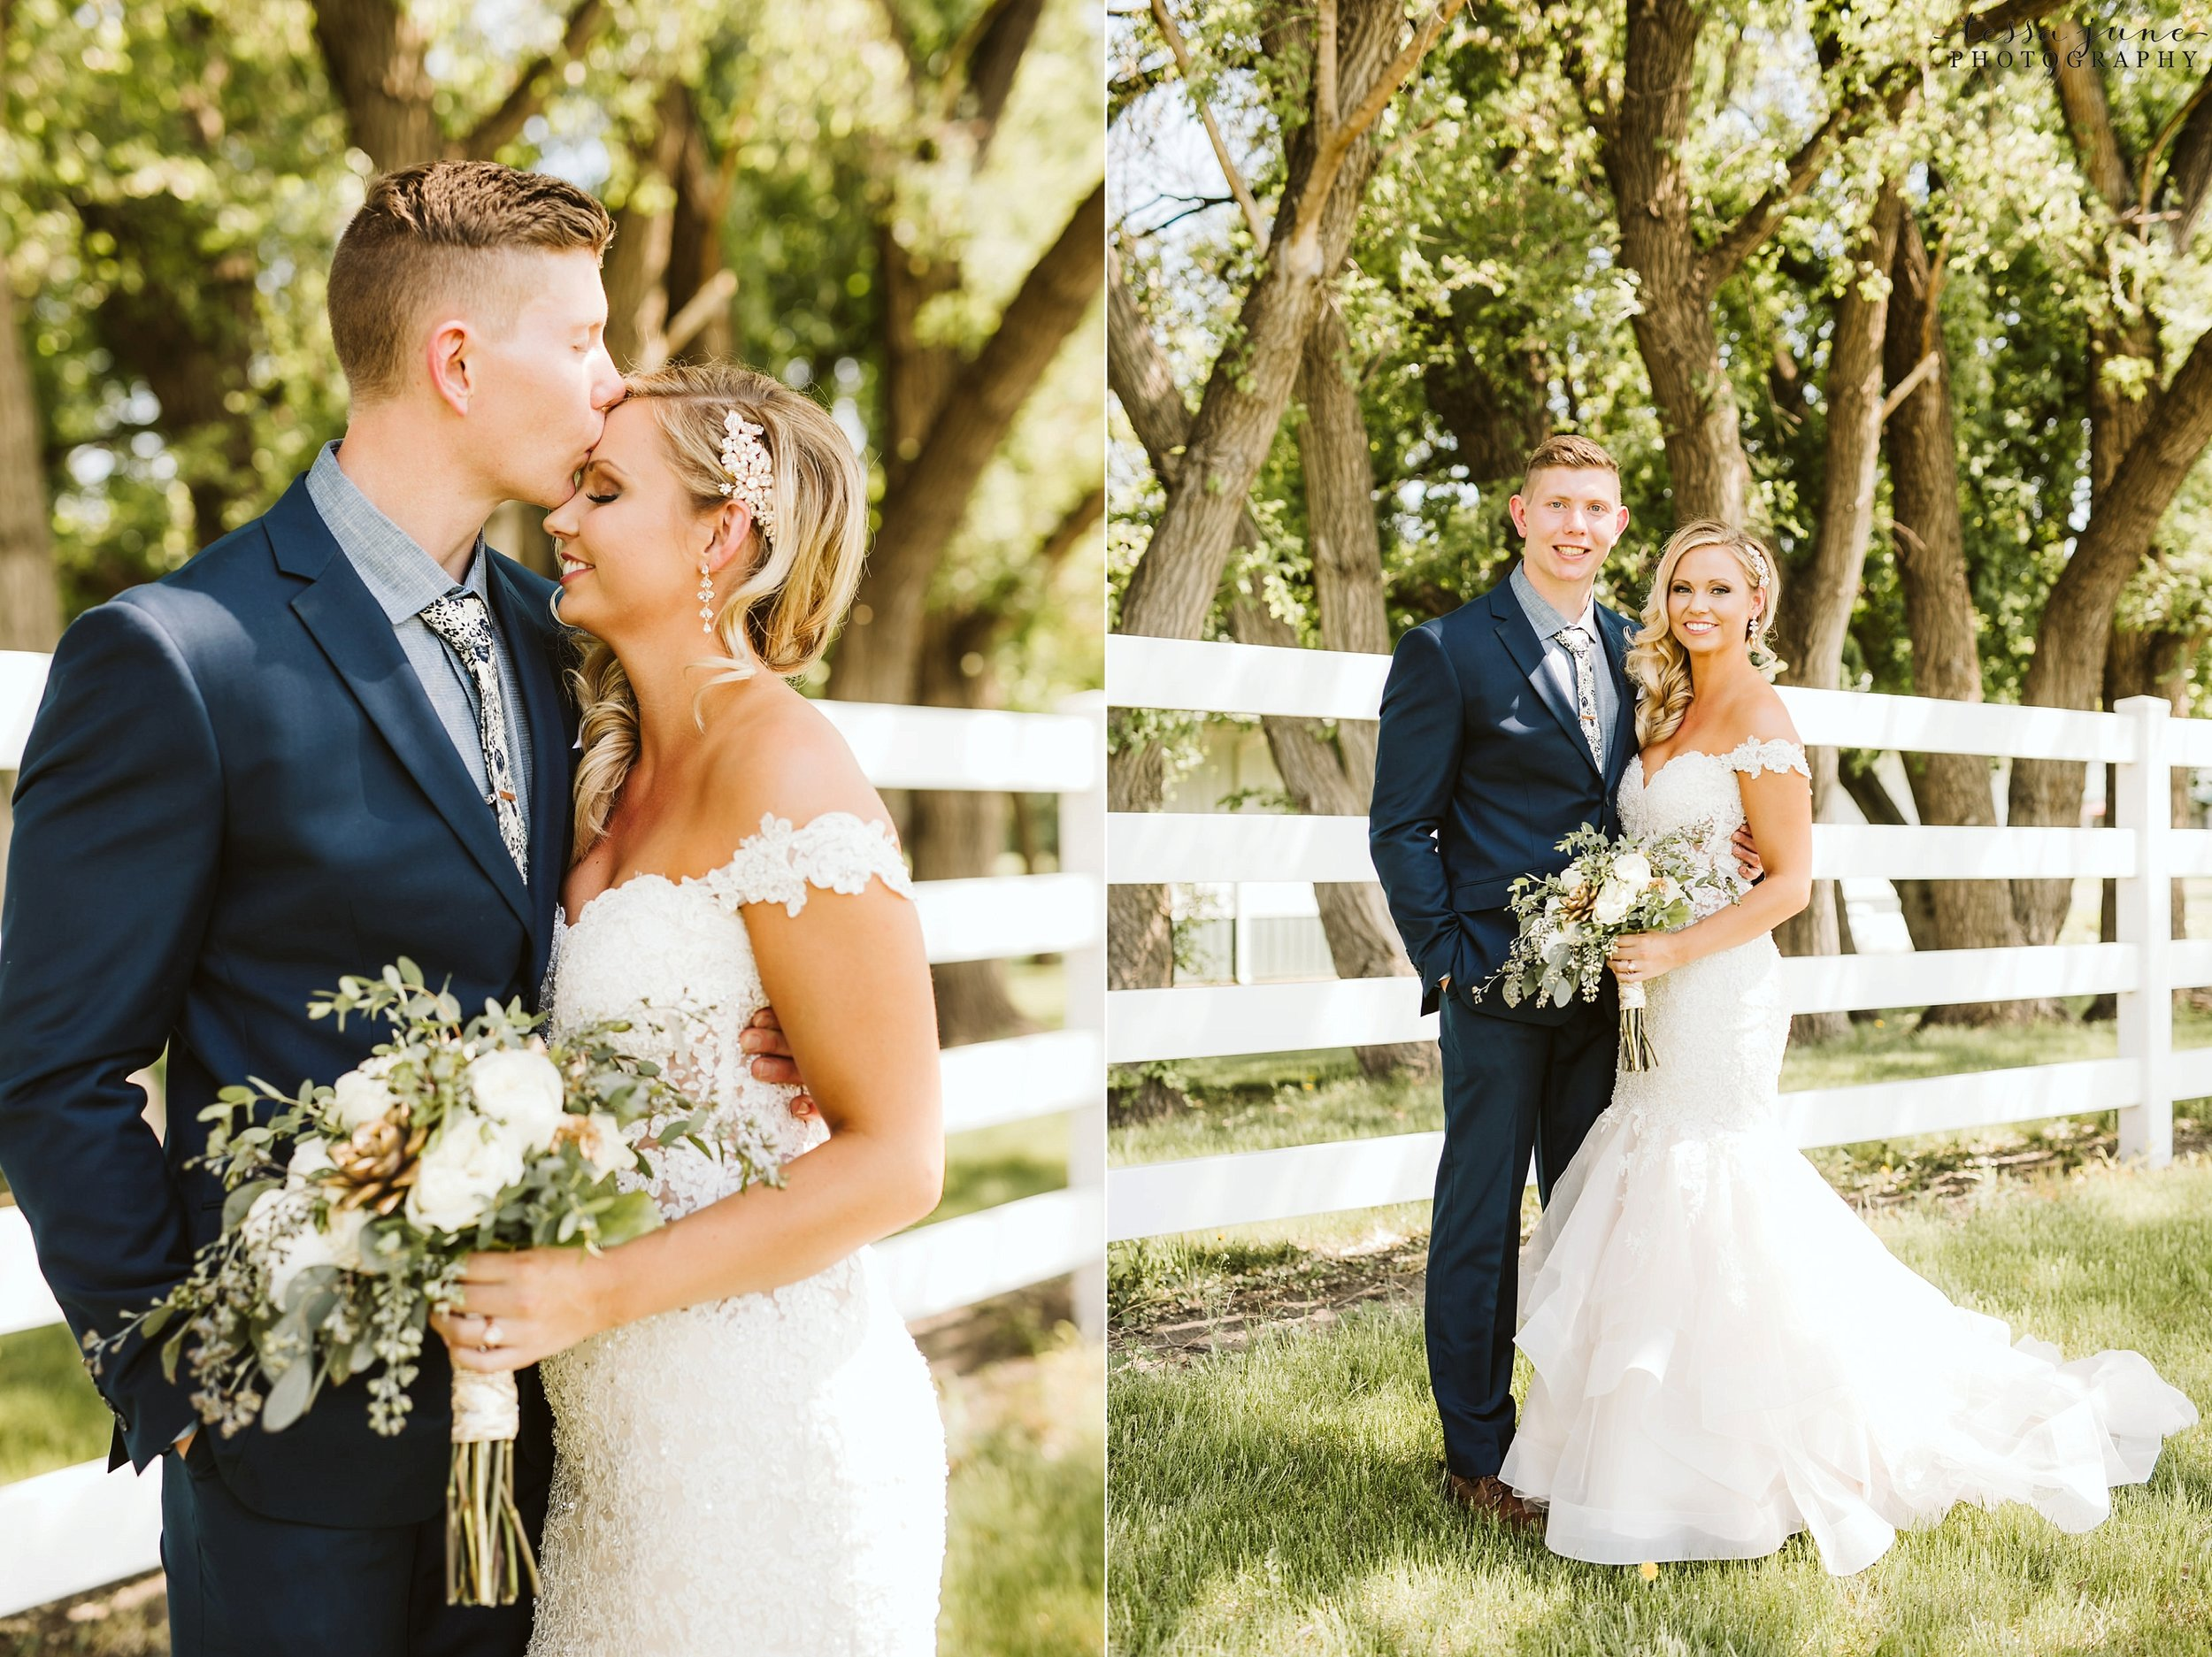 carlos-creek-winery-wedding-alexandria-minnesota-glam-elegant-floral-37.jpg